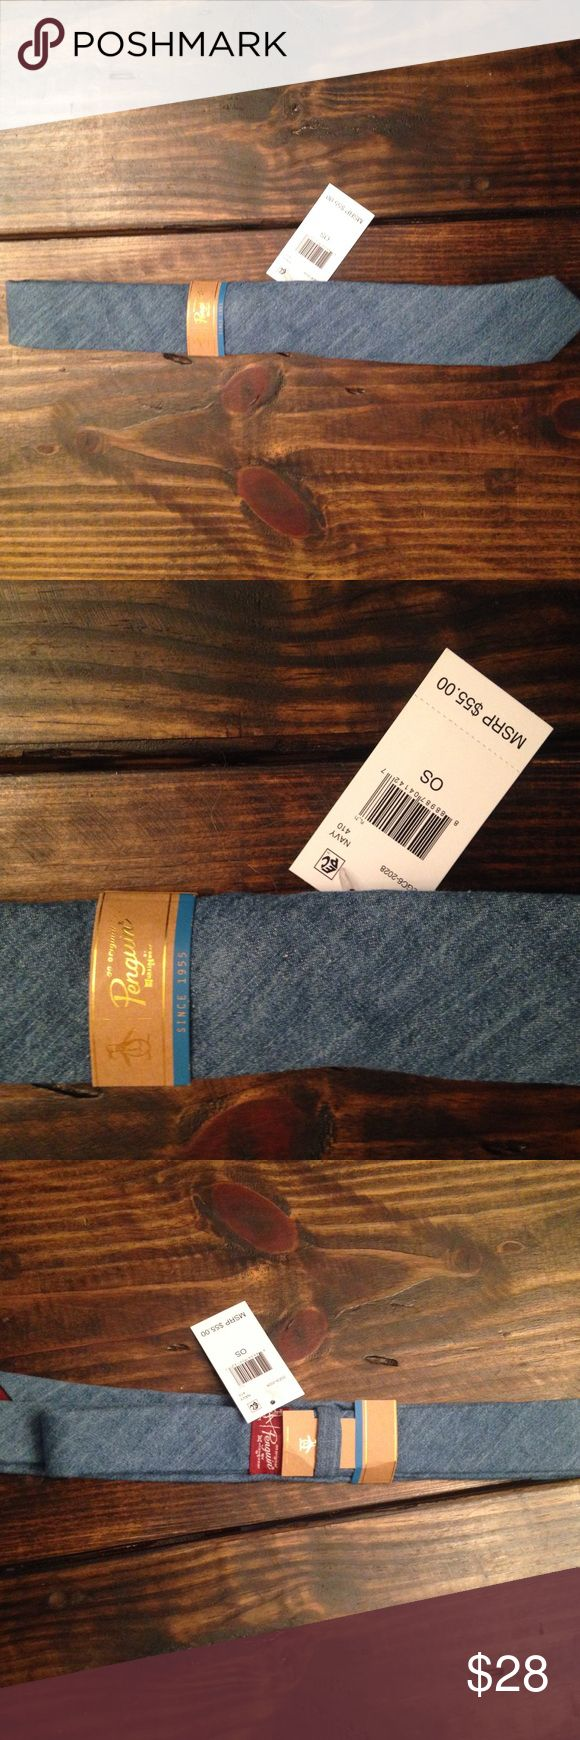 NWT new men's skinny blue chambray necktie penguin Penguin brand new with tags skinny neck tie. Original Penguin Accessories Ties